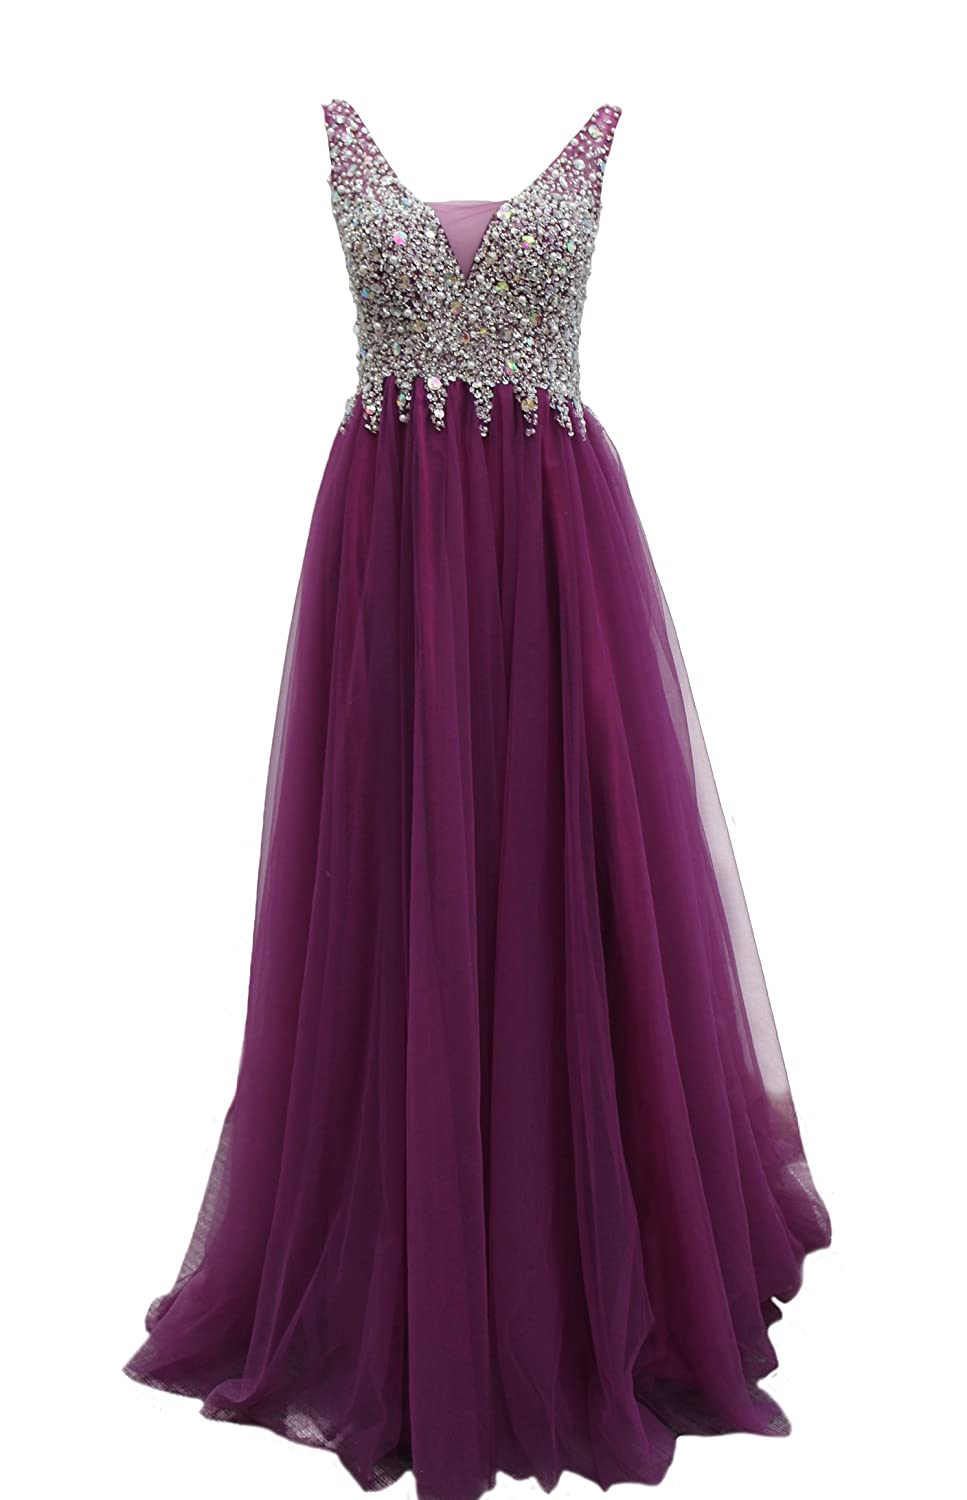 Bridal_Mall Women's Long V-neck Evening Dress Bridesmaid Gowns